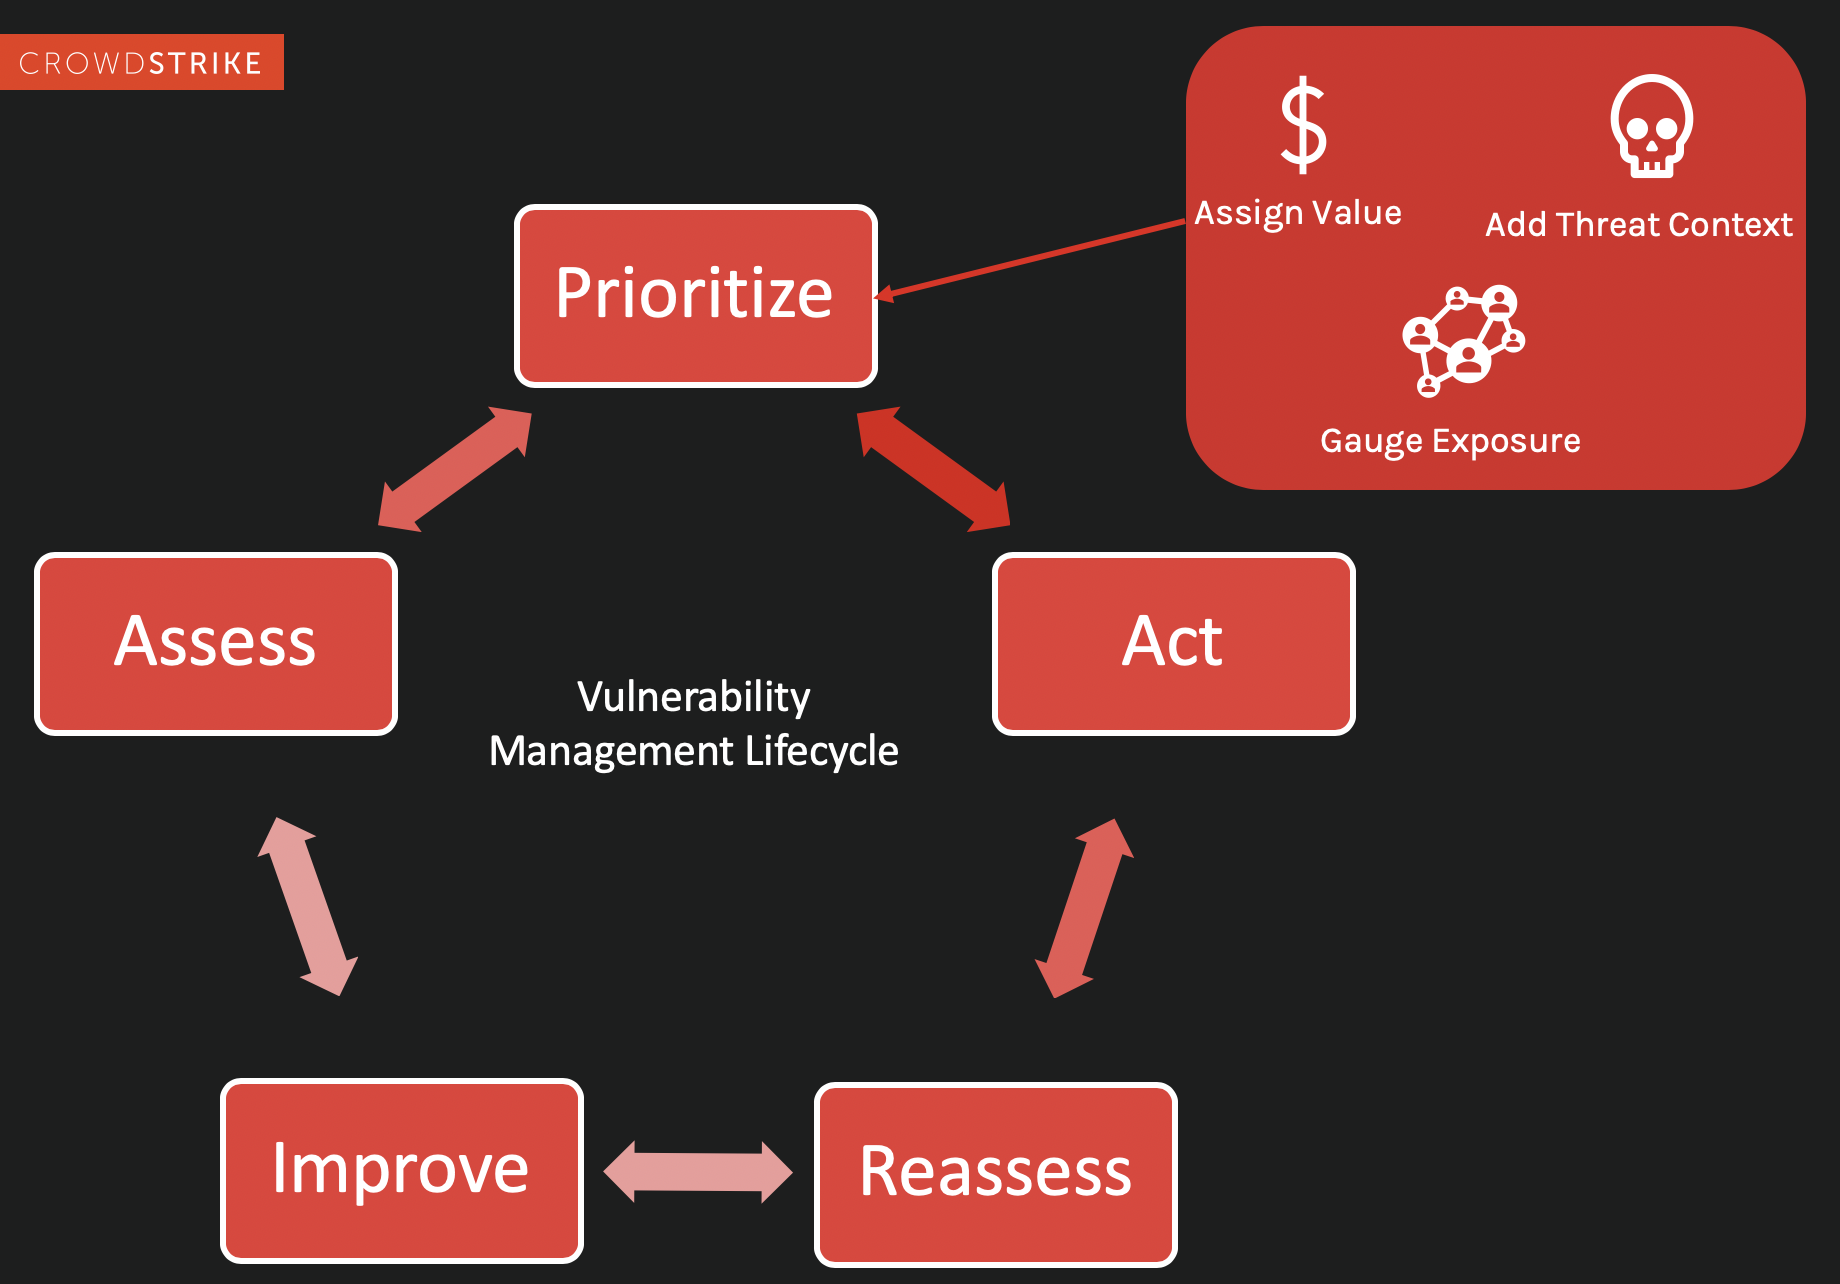 Prioritize aspect of the vulnerability management cycle